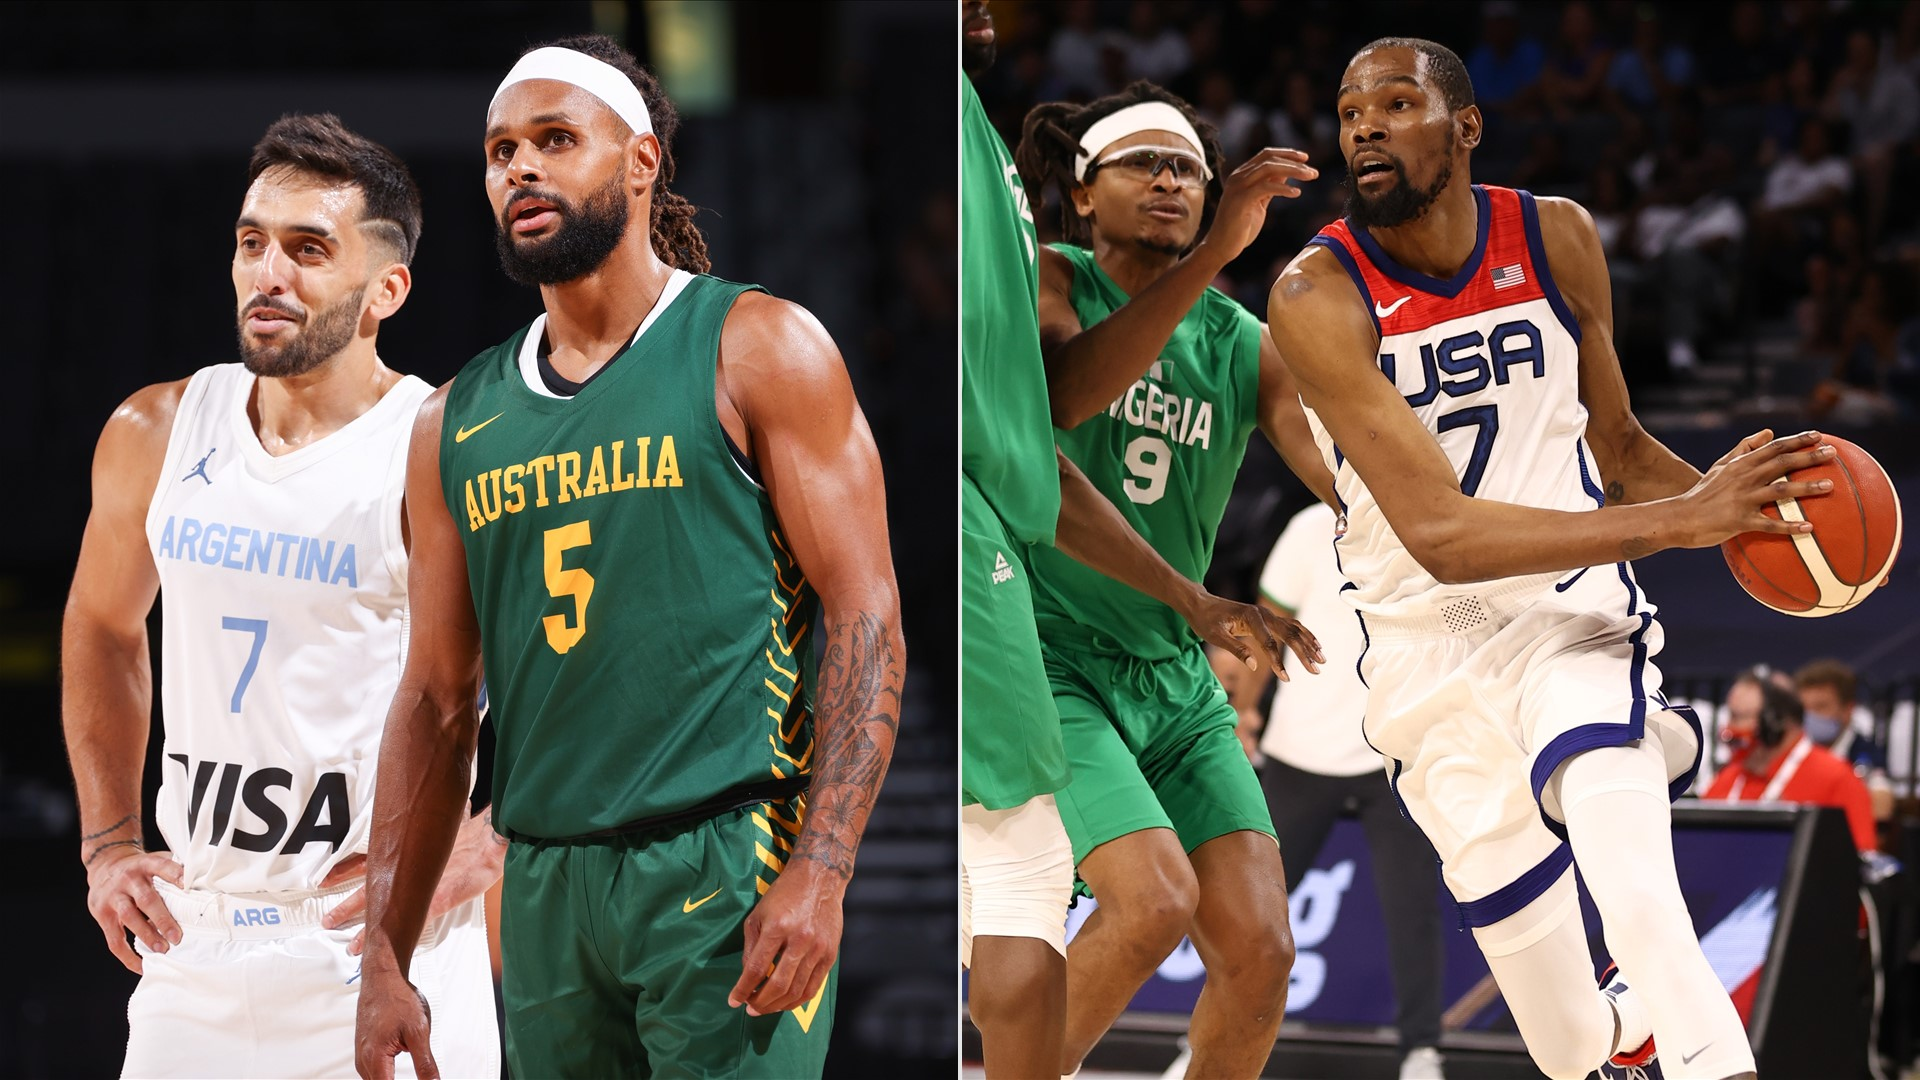 Tokyo 2020 Olympics: Biggest Stories to Watch in Men's Basketball    NBA.com Mexico